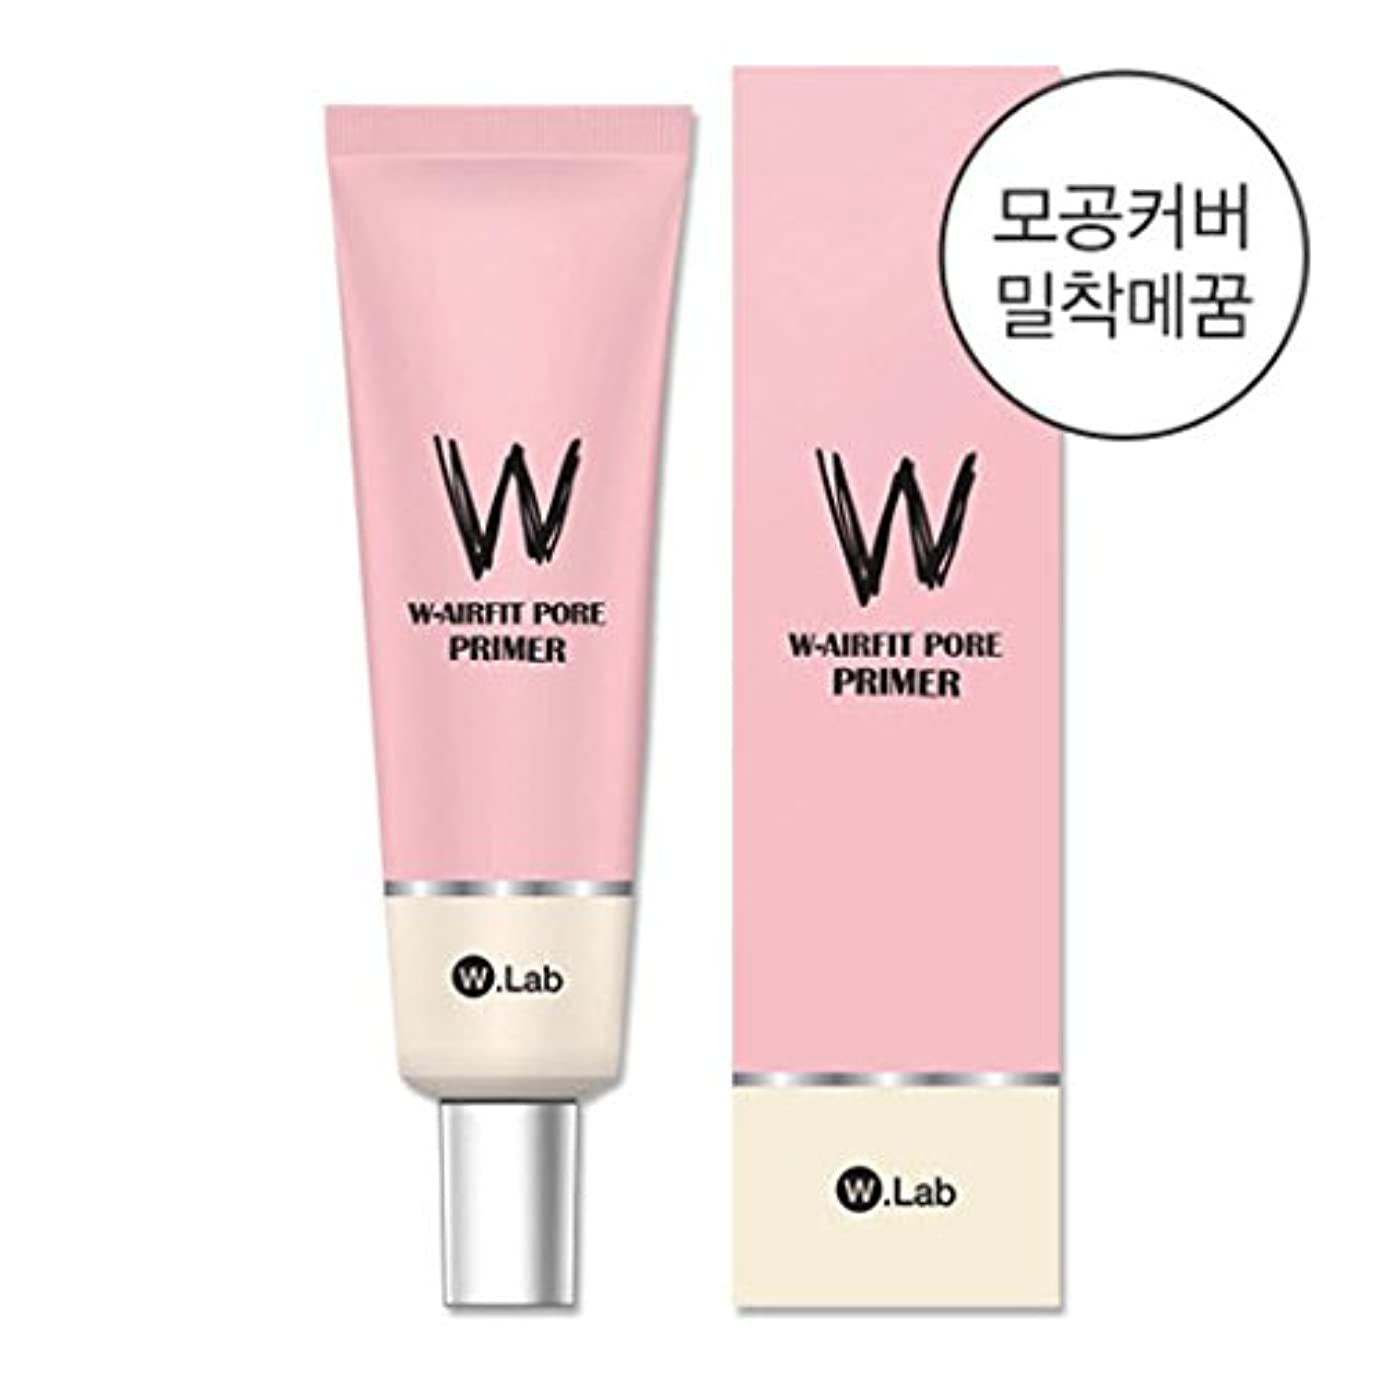 レース彼女は志すW.Lab W-Airfit Pore Primer 35g [parallel import goods]